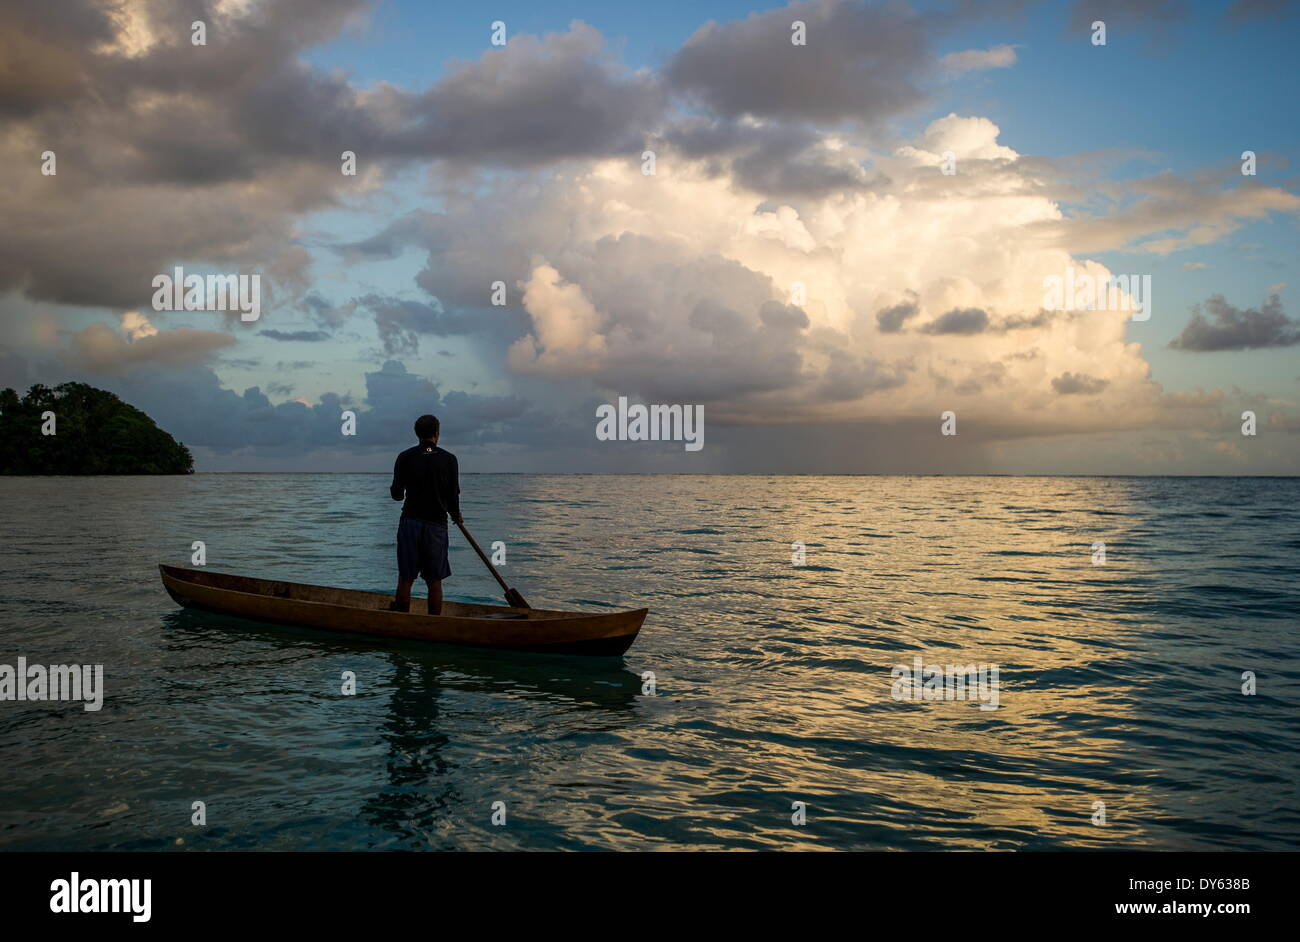 A man in a dug out canoe, Solomon Islands, Pacific - Stock Image